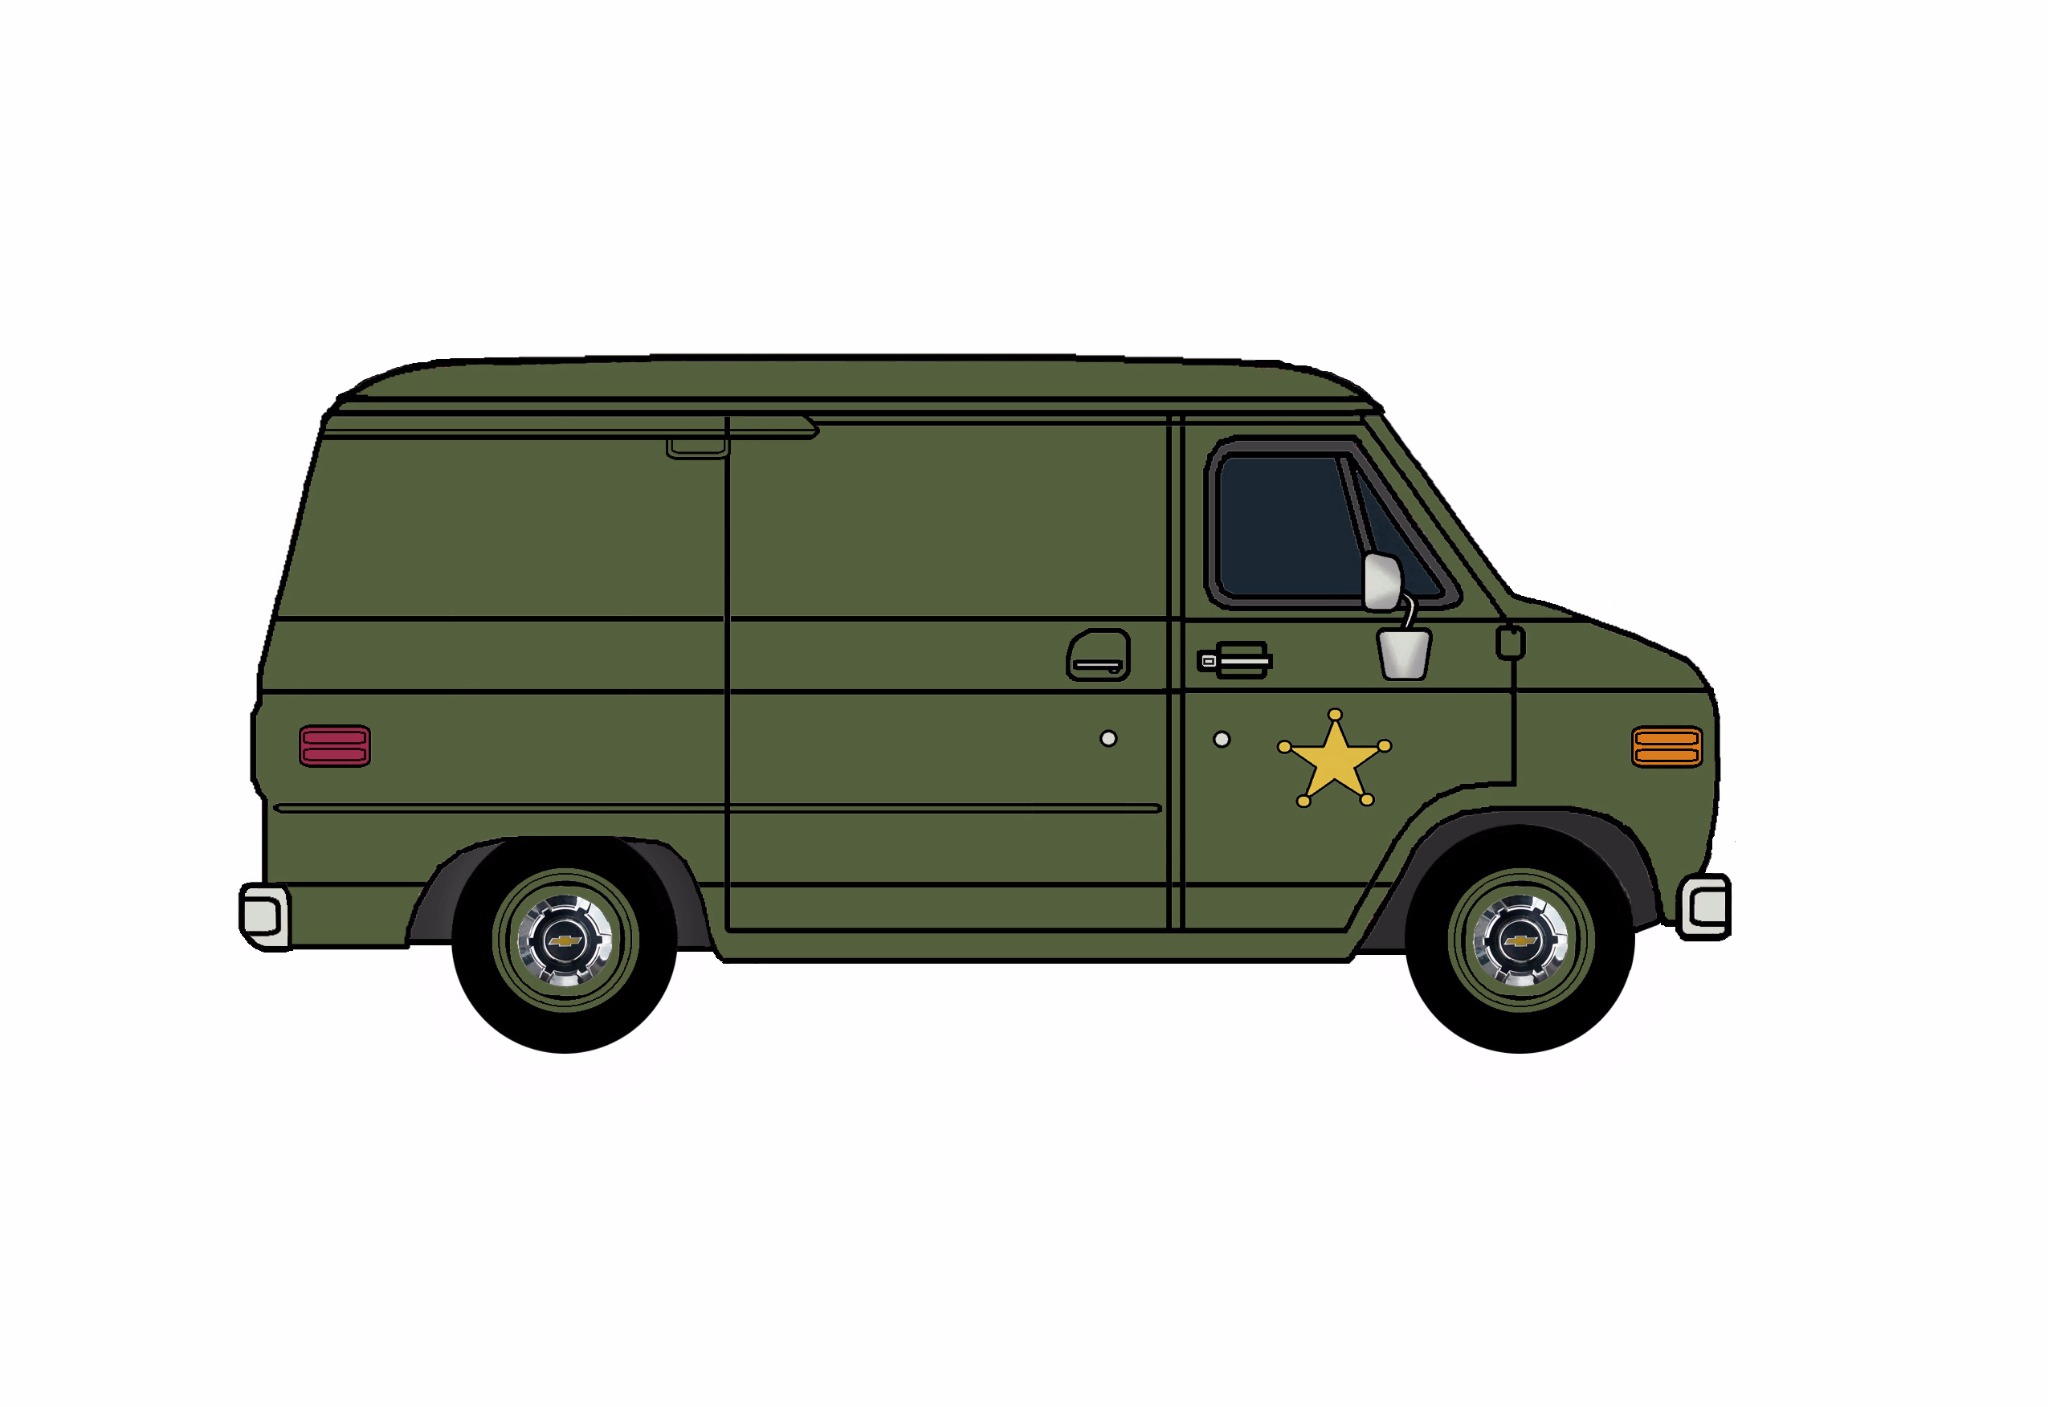 1977 Chevy G10 Police Van ARMY GREEN